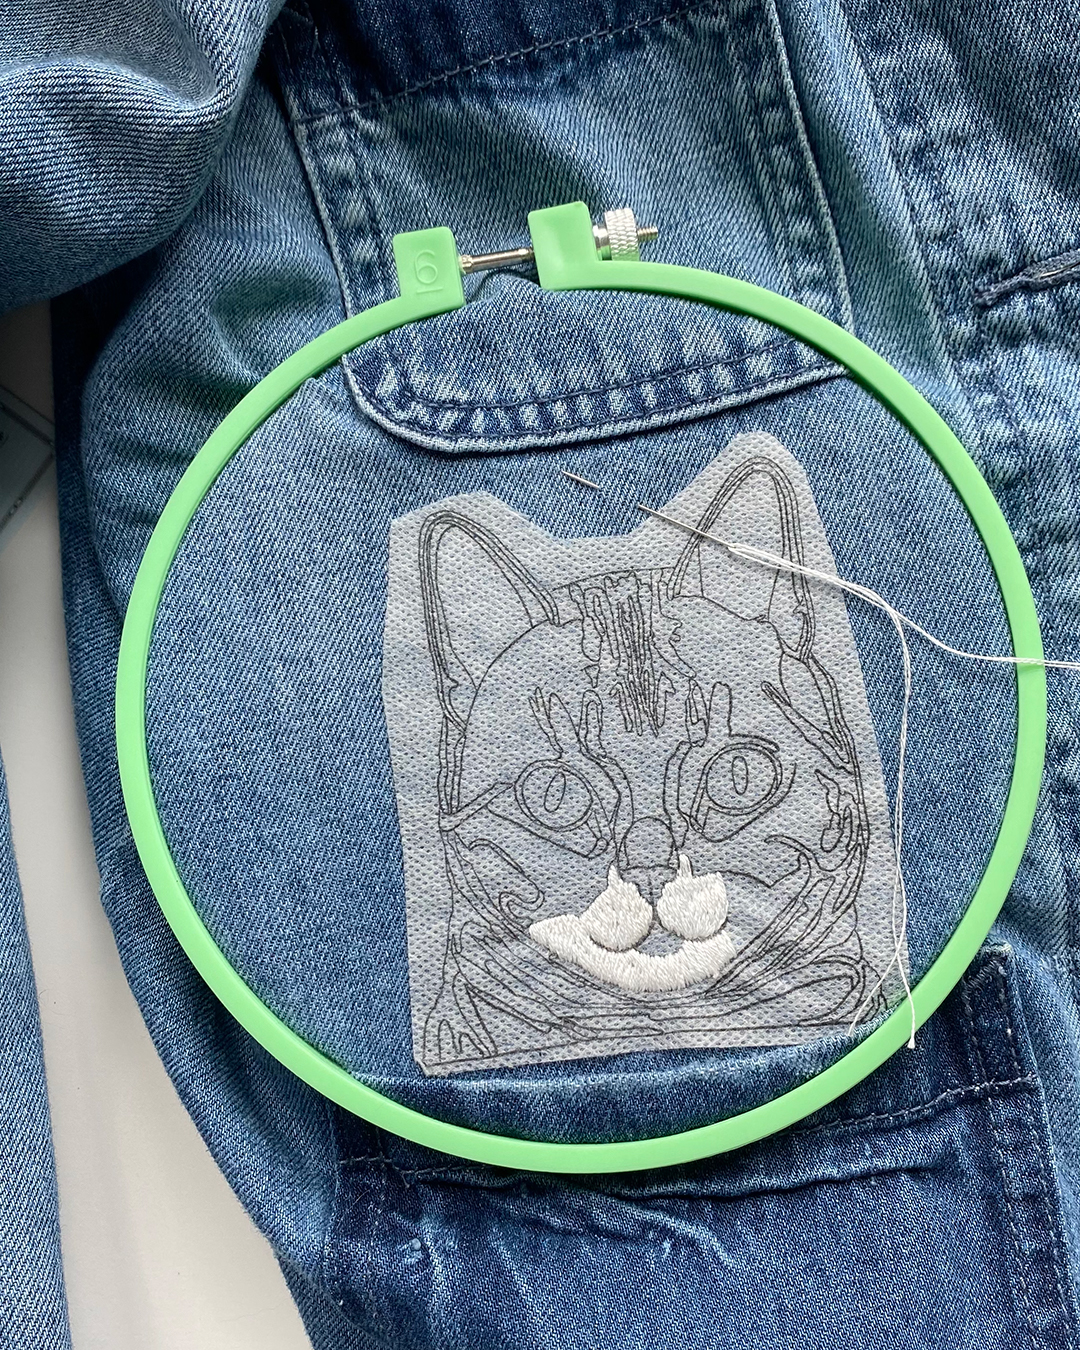 Cat embroidery on a jacket